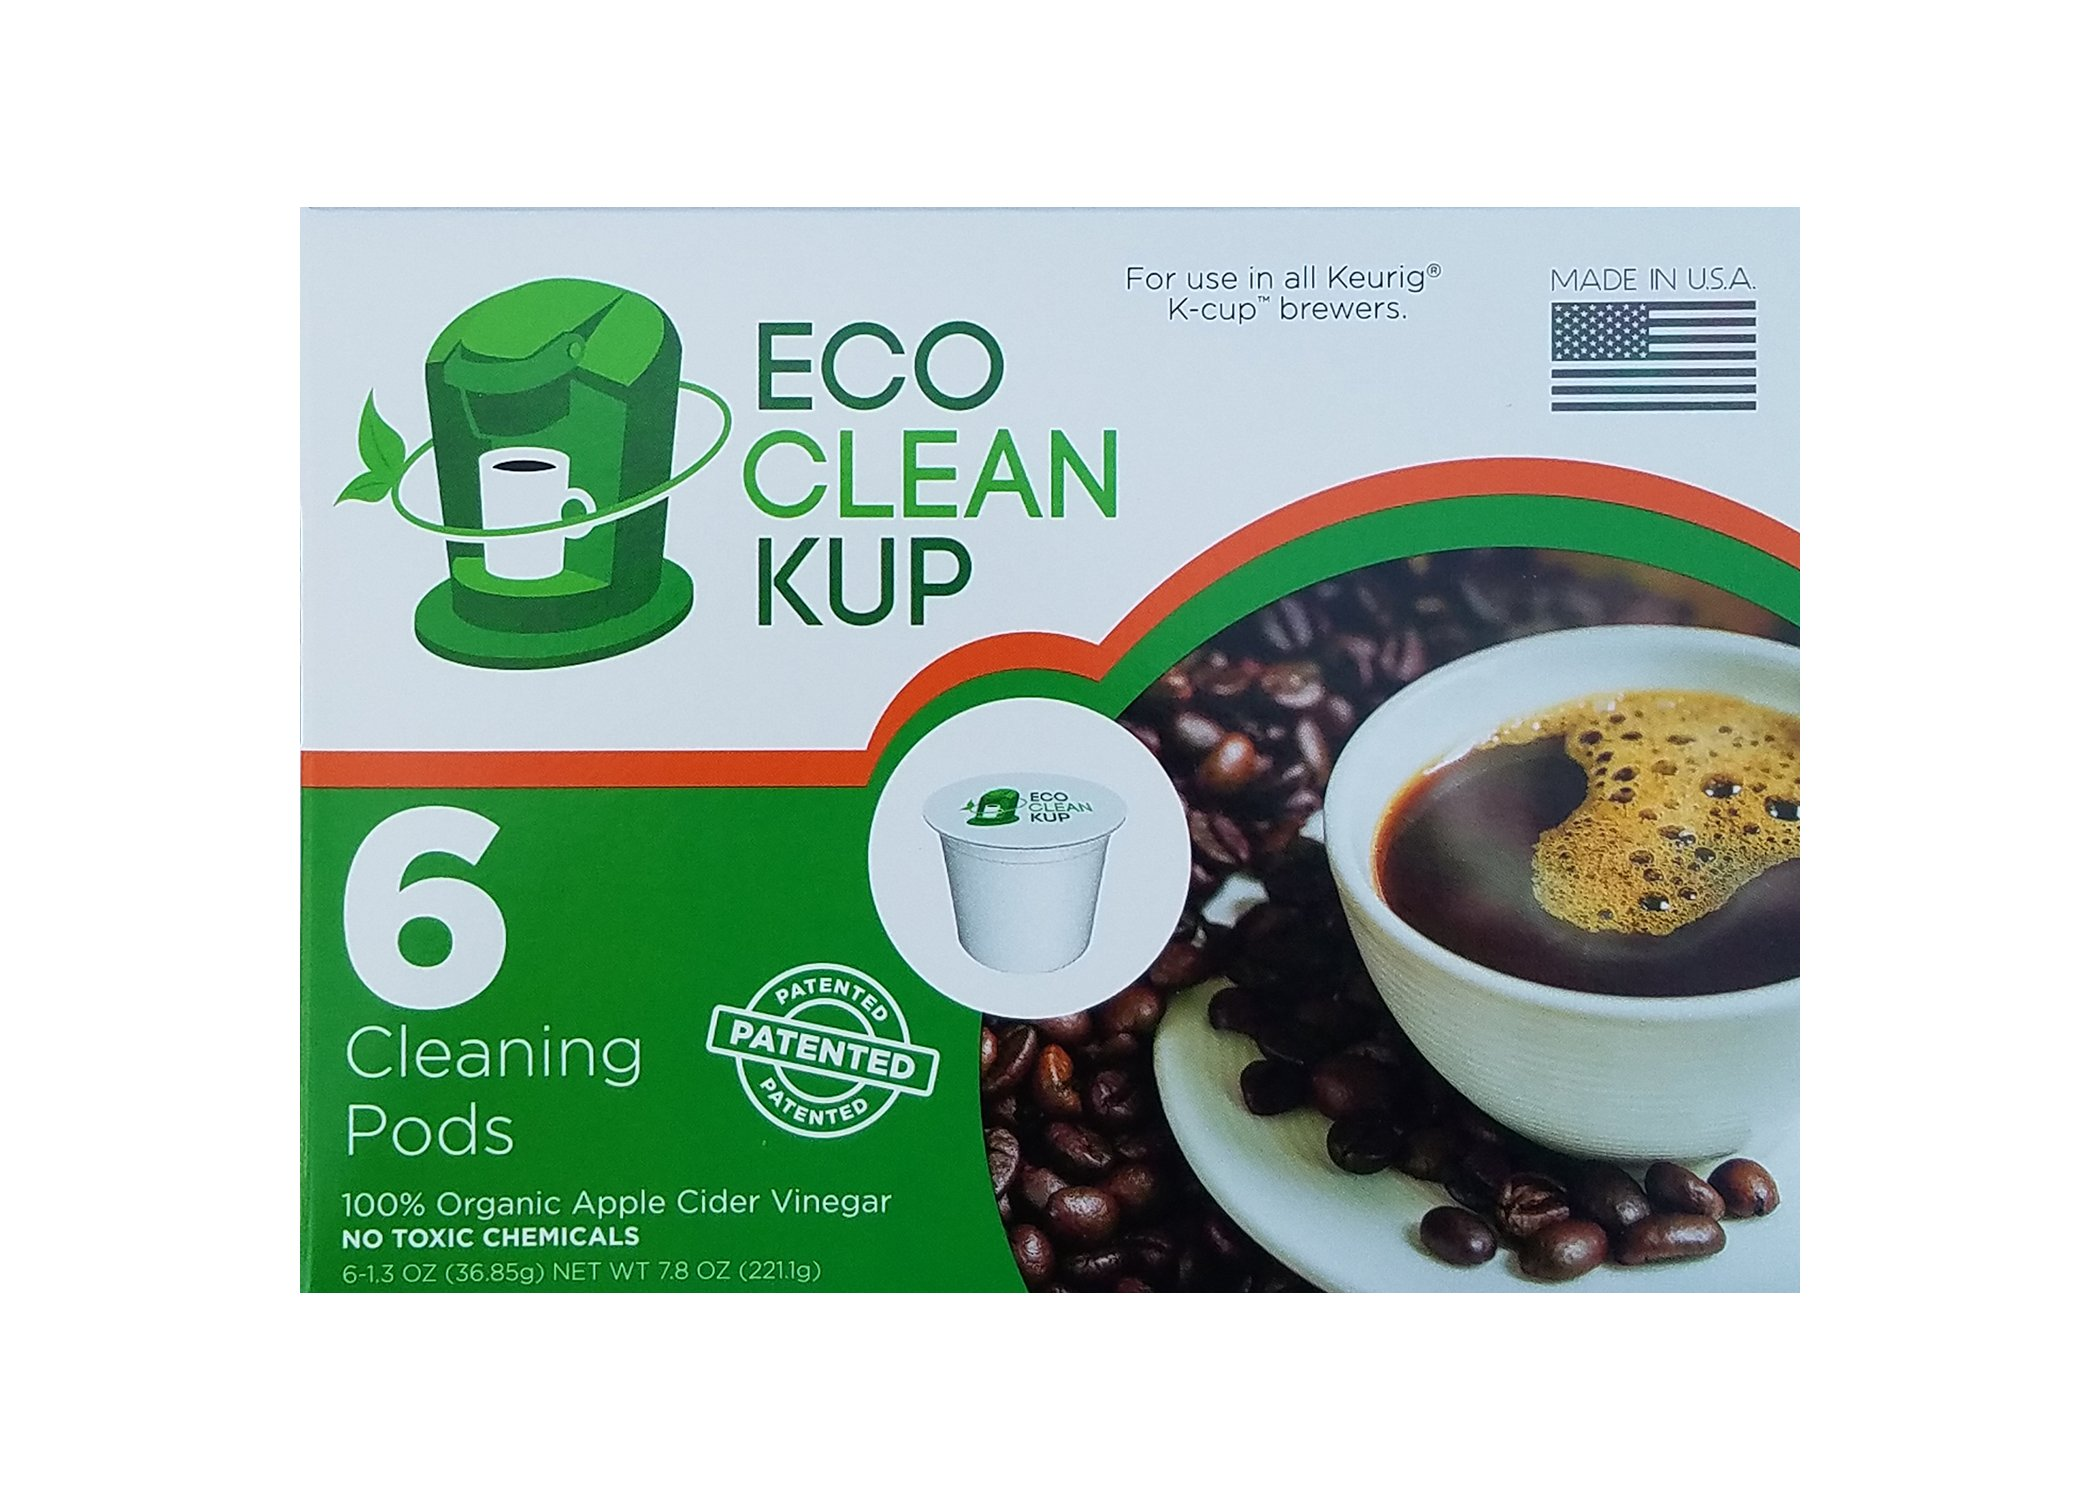 Eco Clean Kup Compatible with Keurig K-Cup 2.0 Machine Cleaning Pods by Eco Clean Kup - 6 Single Serve Cleaner Cups per Box